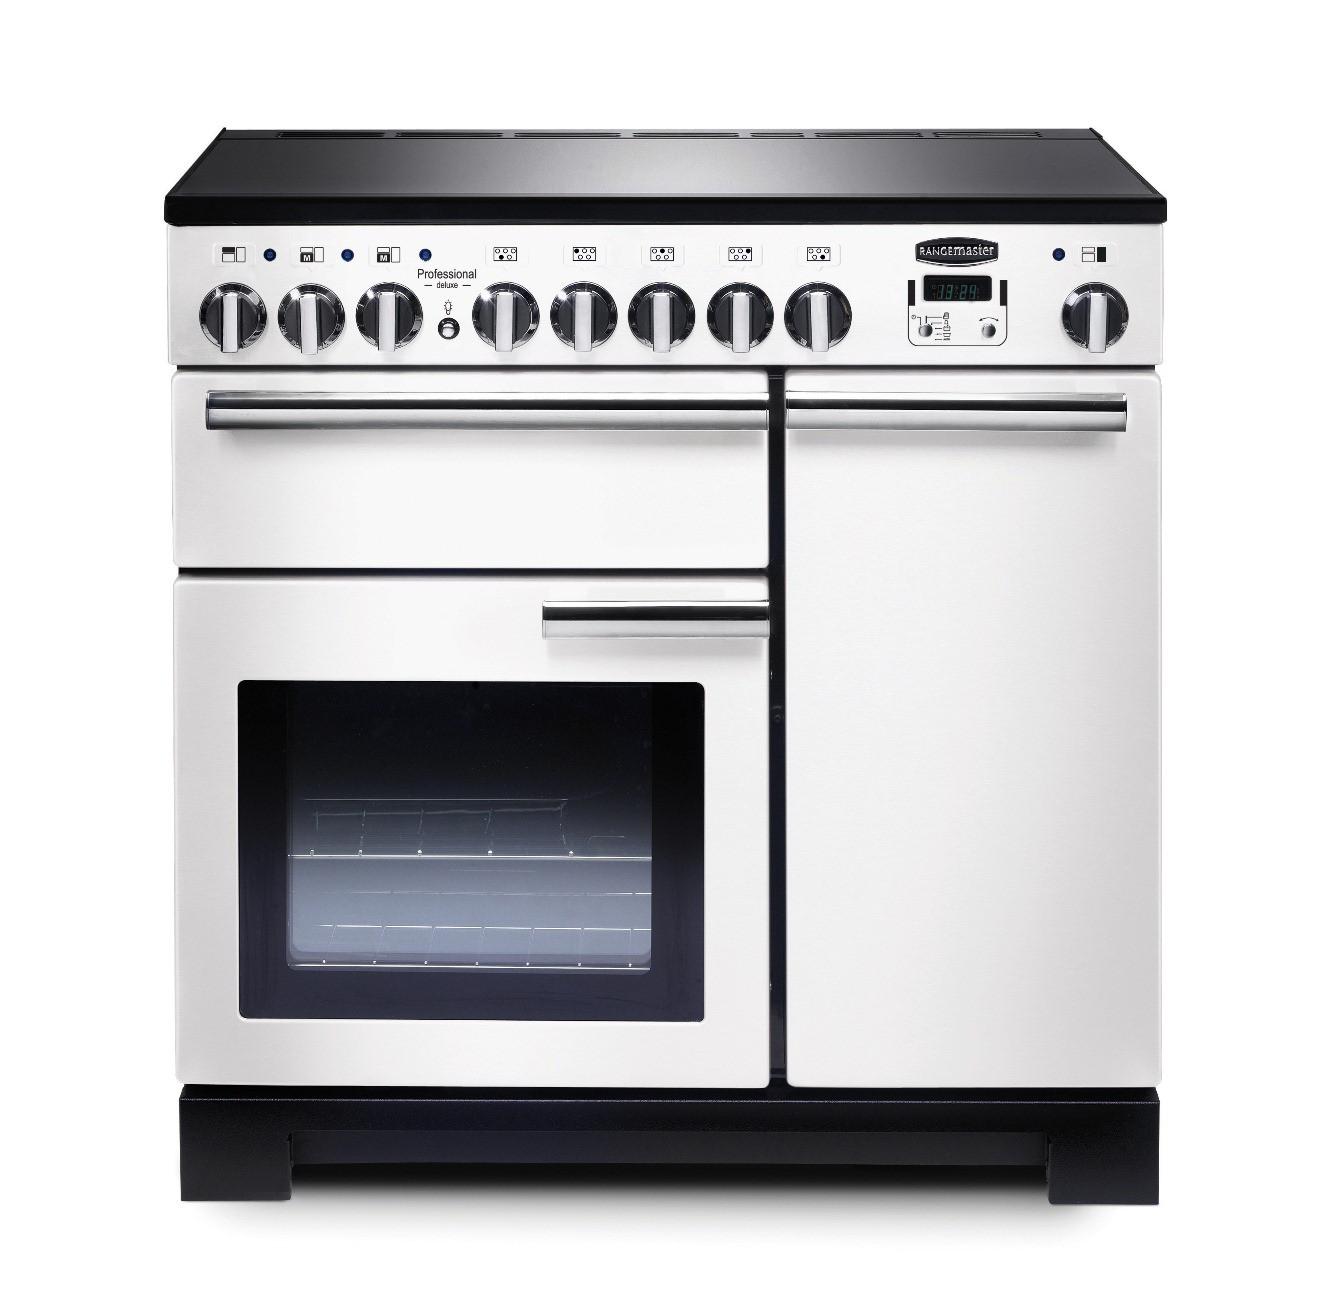 Rangemaster Professional Deluxe 90 Induction White Range Cooker 98740